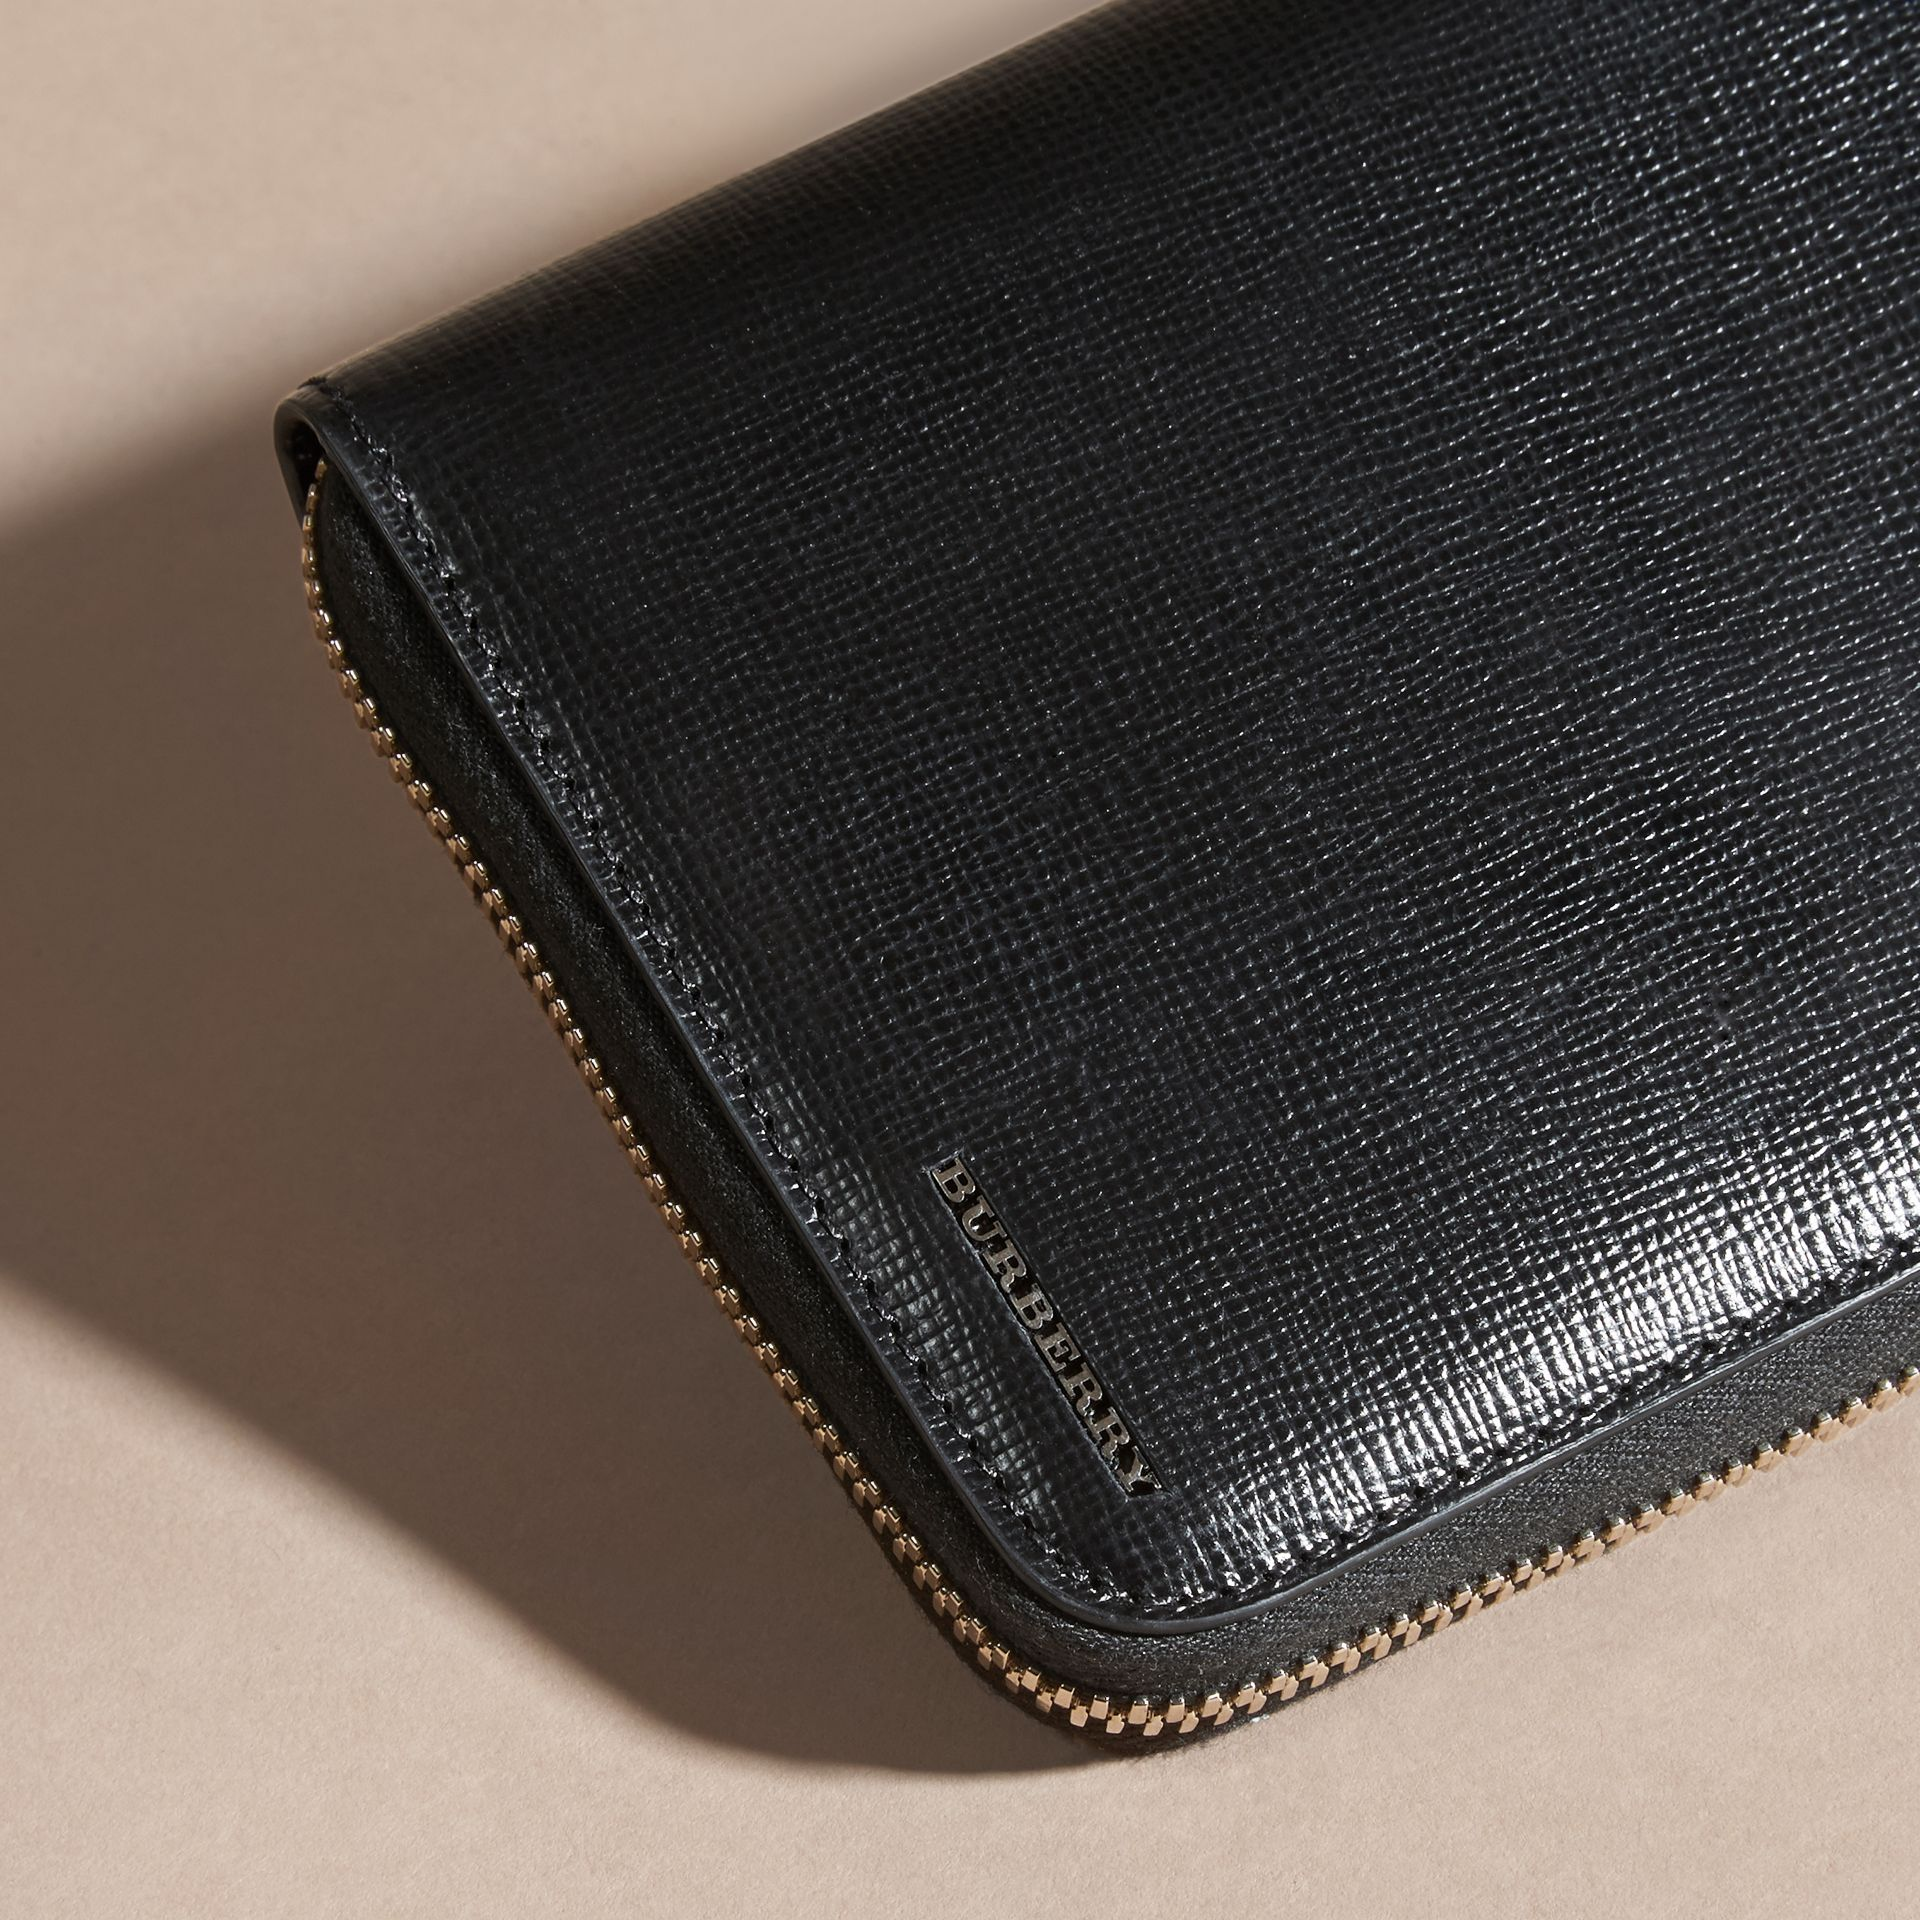 Black London Leather Ziparound Wallet Black - gallery image 4